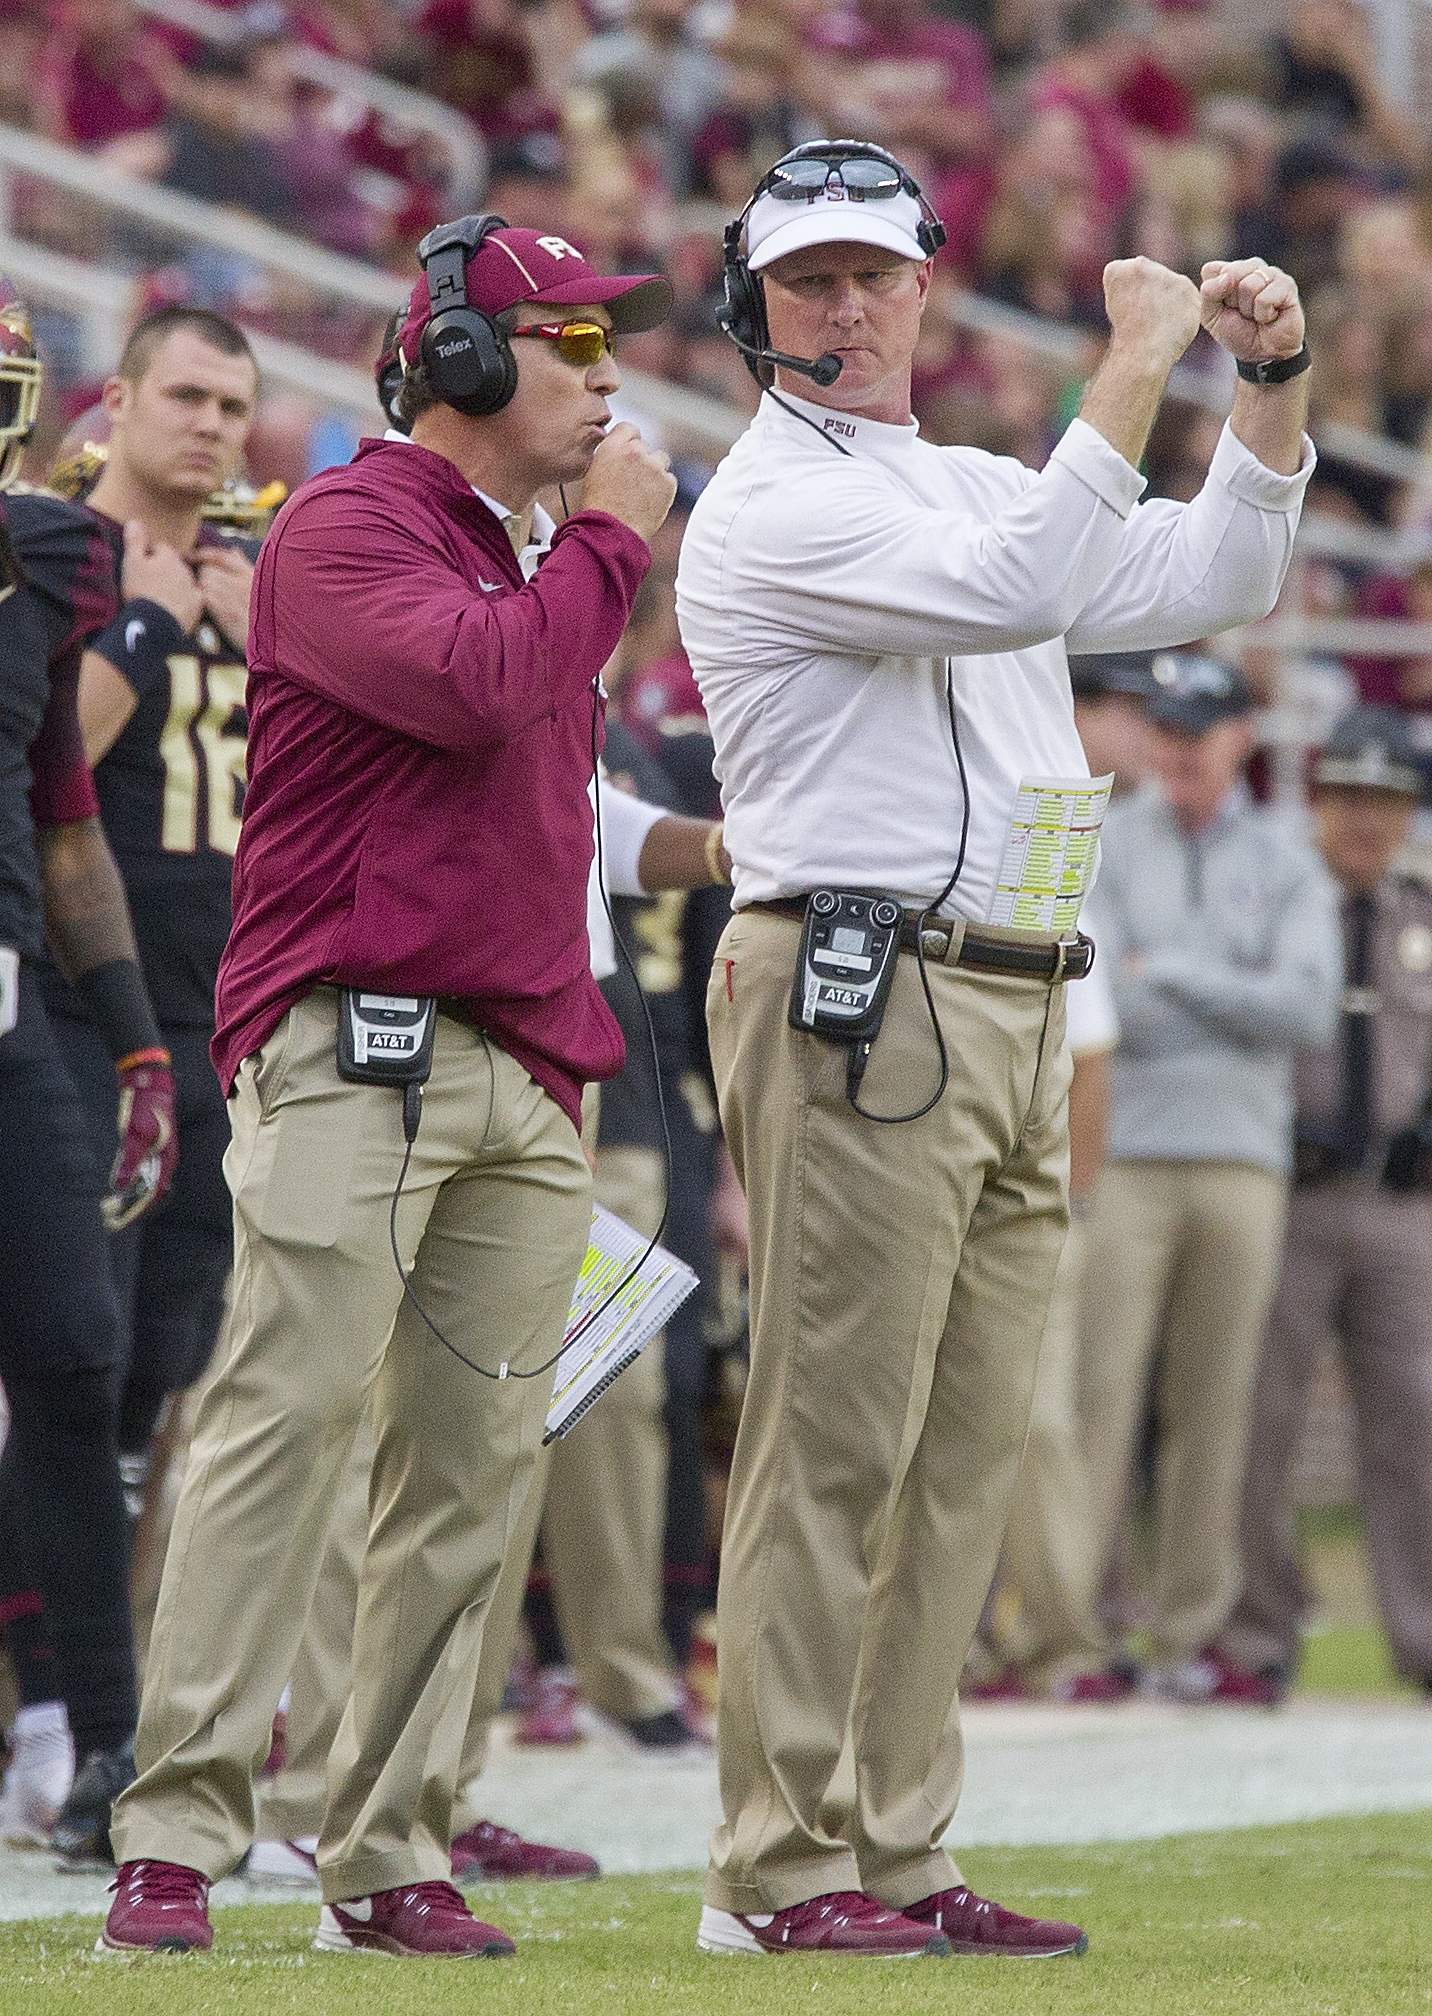 Florida State head coach Jimbo Fisher, left, send in a play via his offensive coordinator Randy Sanders in the first half of an NCAA college football game against Chattanooga in Tallahassee, Fla., Saturday, Nov. 21, 2015.  (AP Photo/Mark Wallheiser)